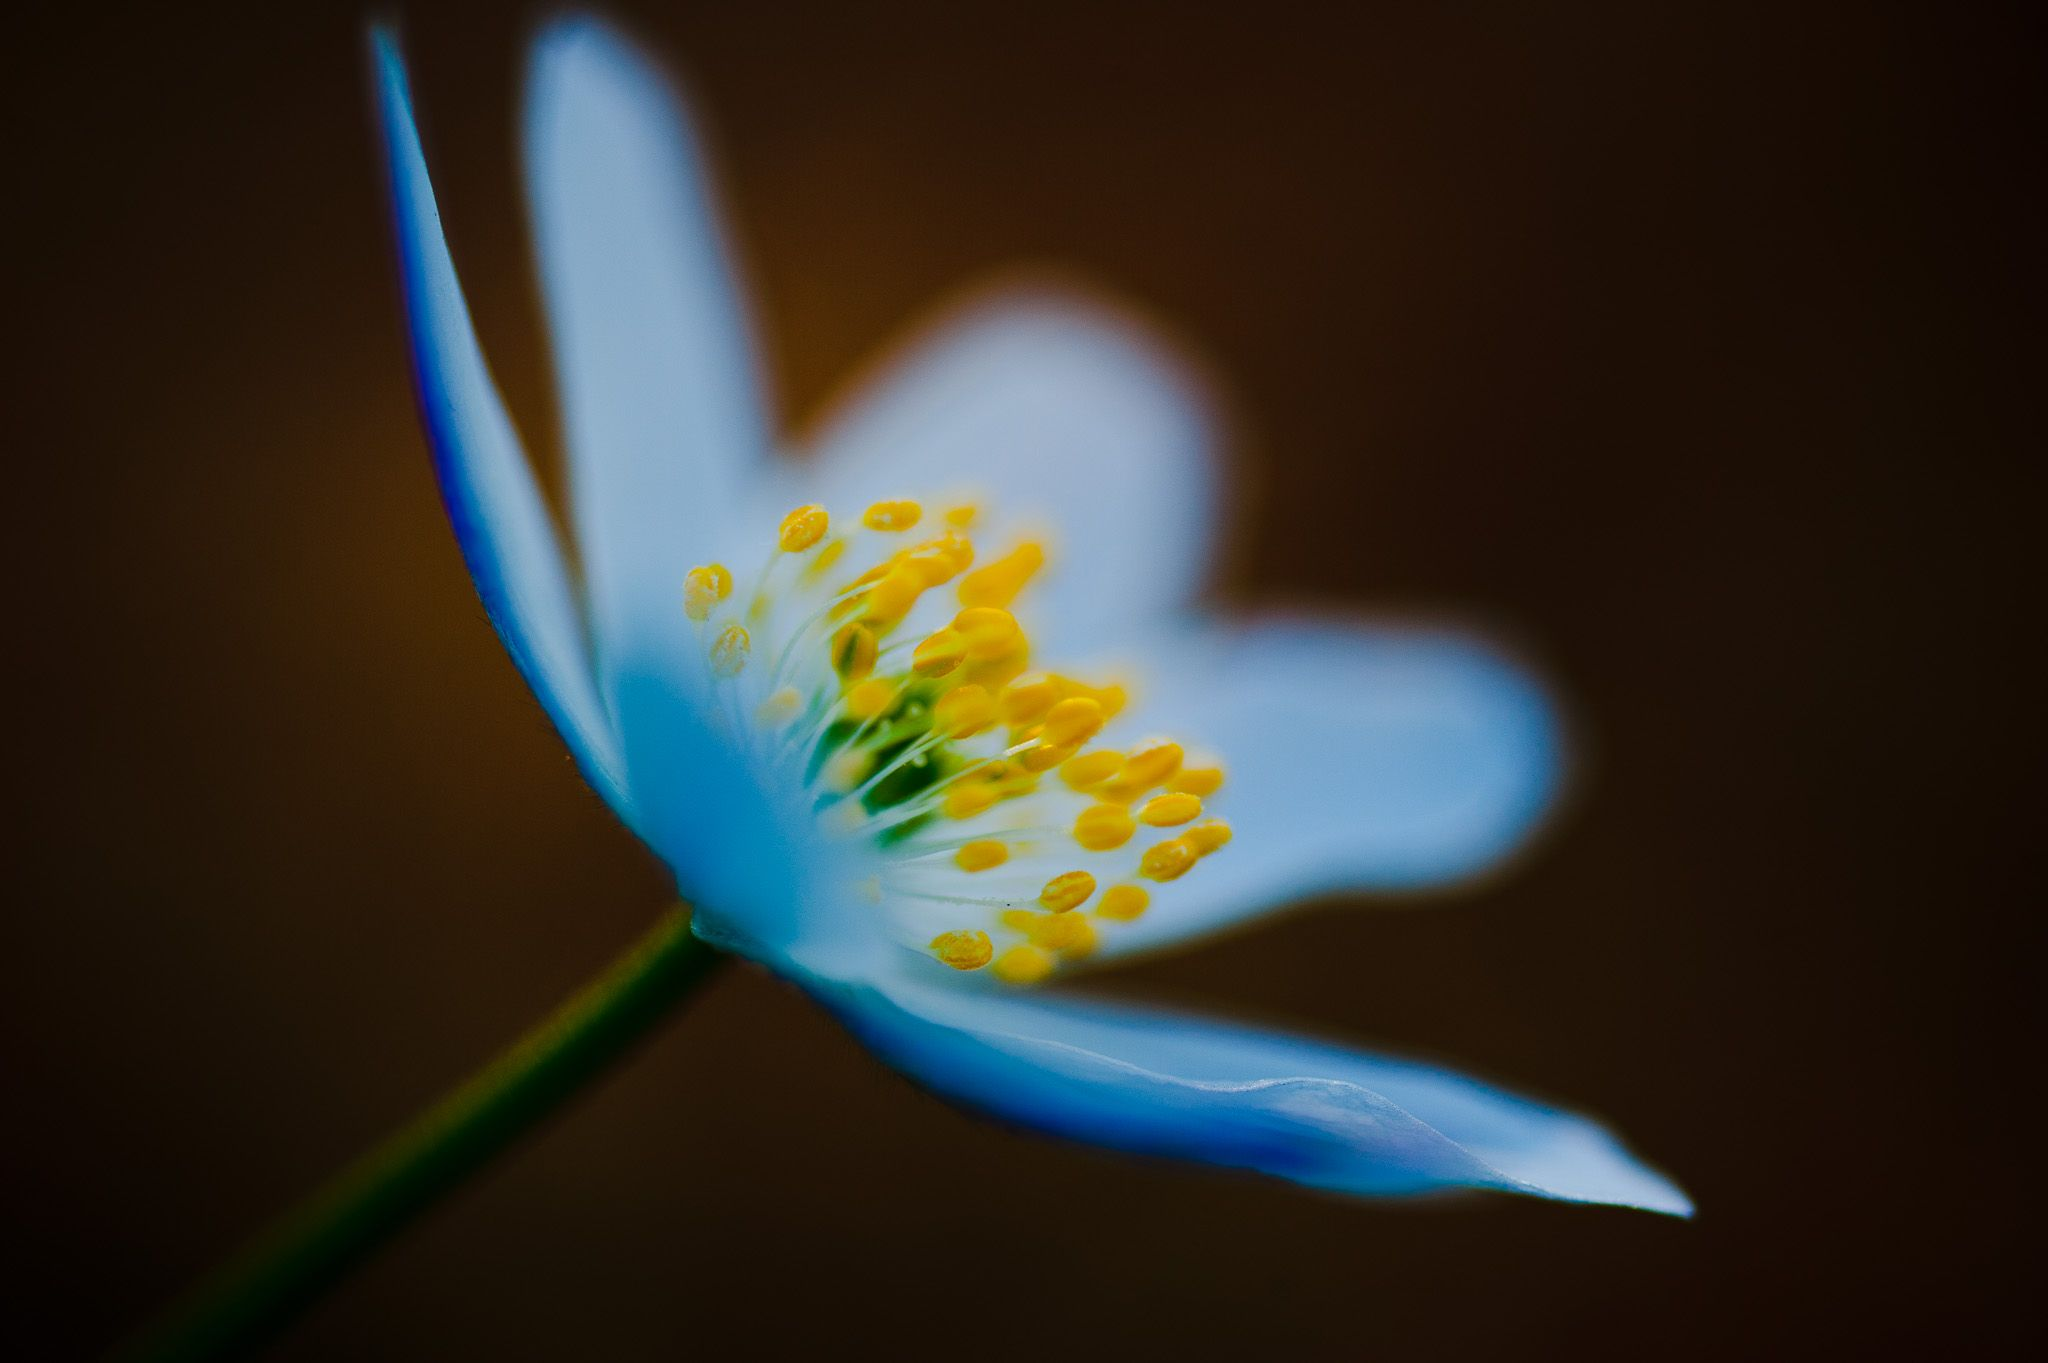 Wood anemone by Fredrik Strandin